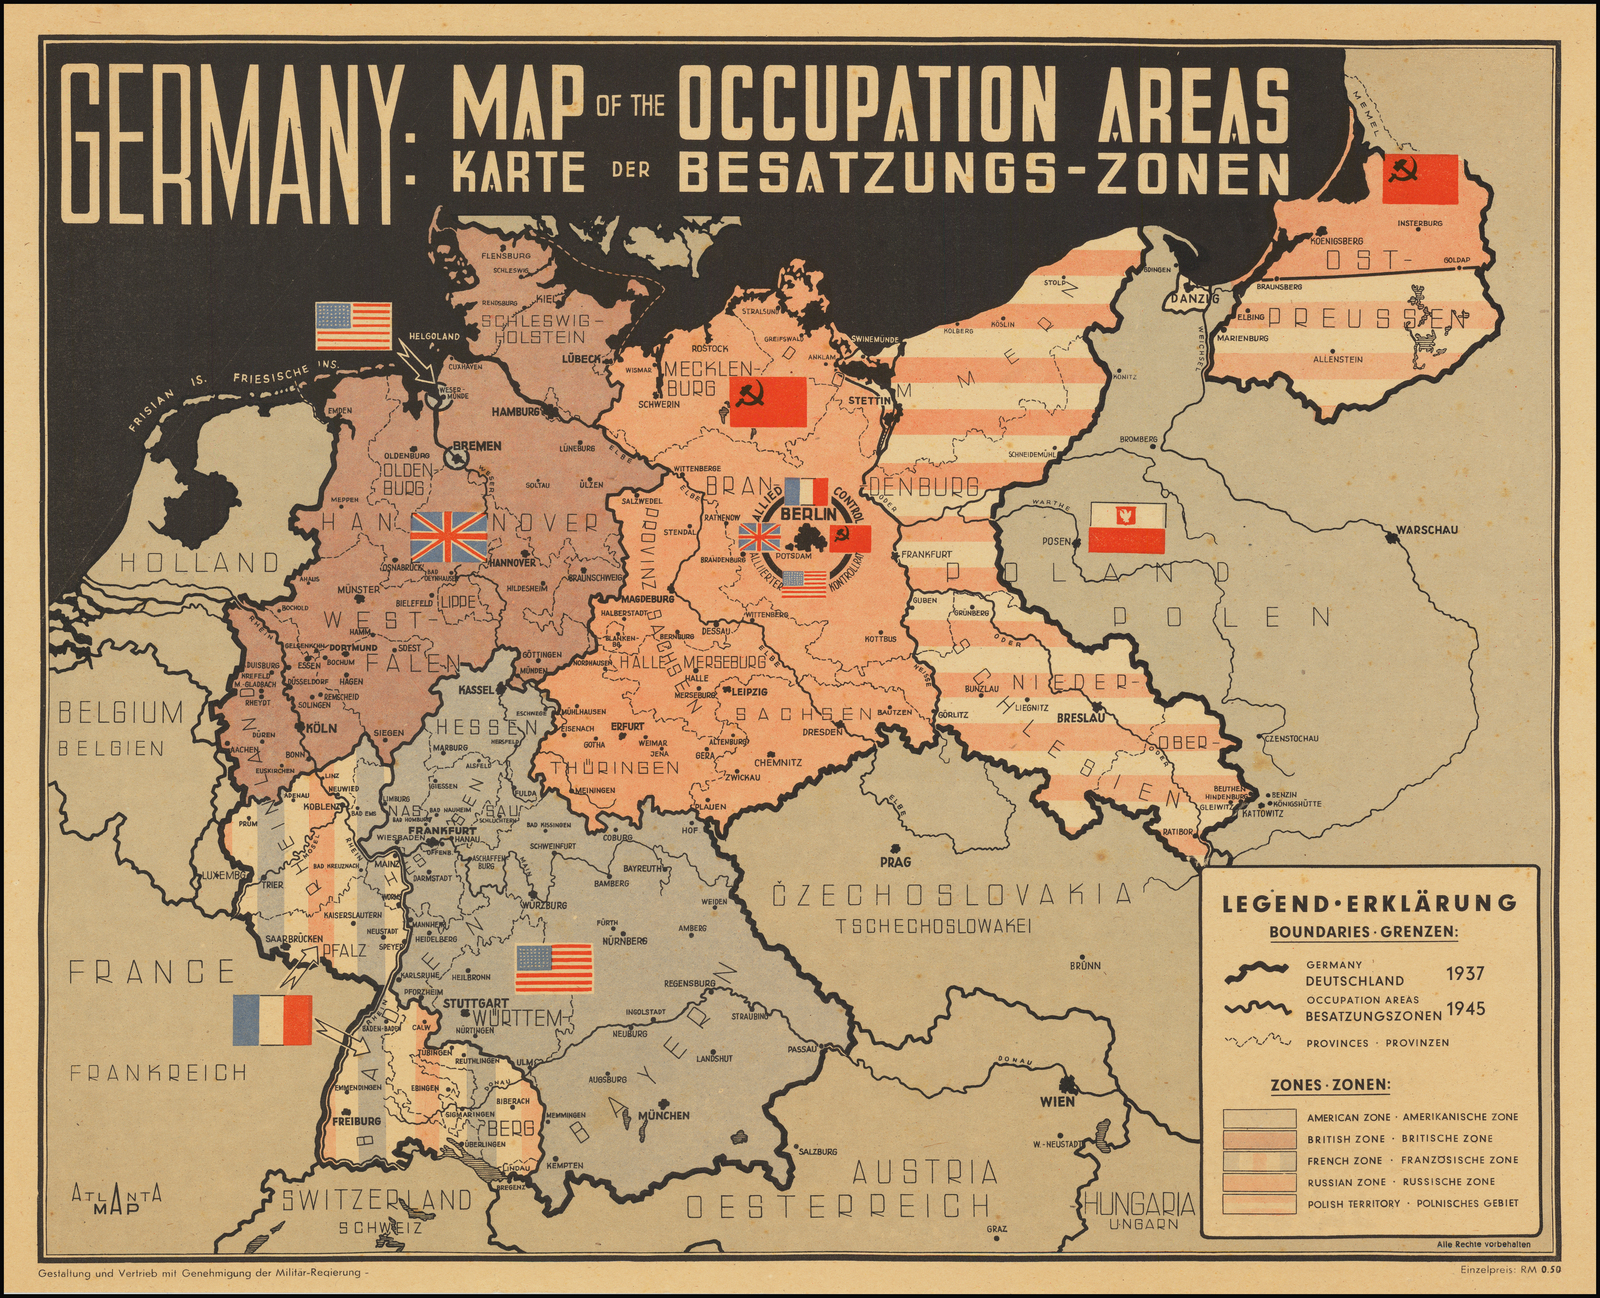 Germany: Map of the Occupation Areas | Karte Der Besatzungs ...